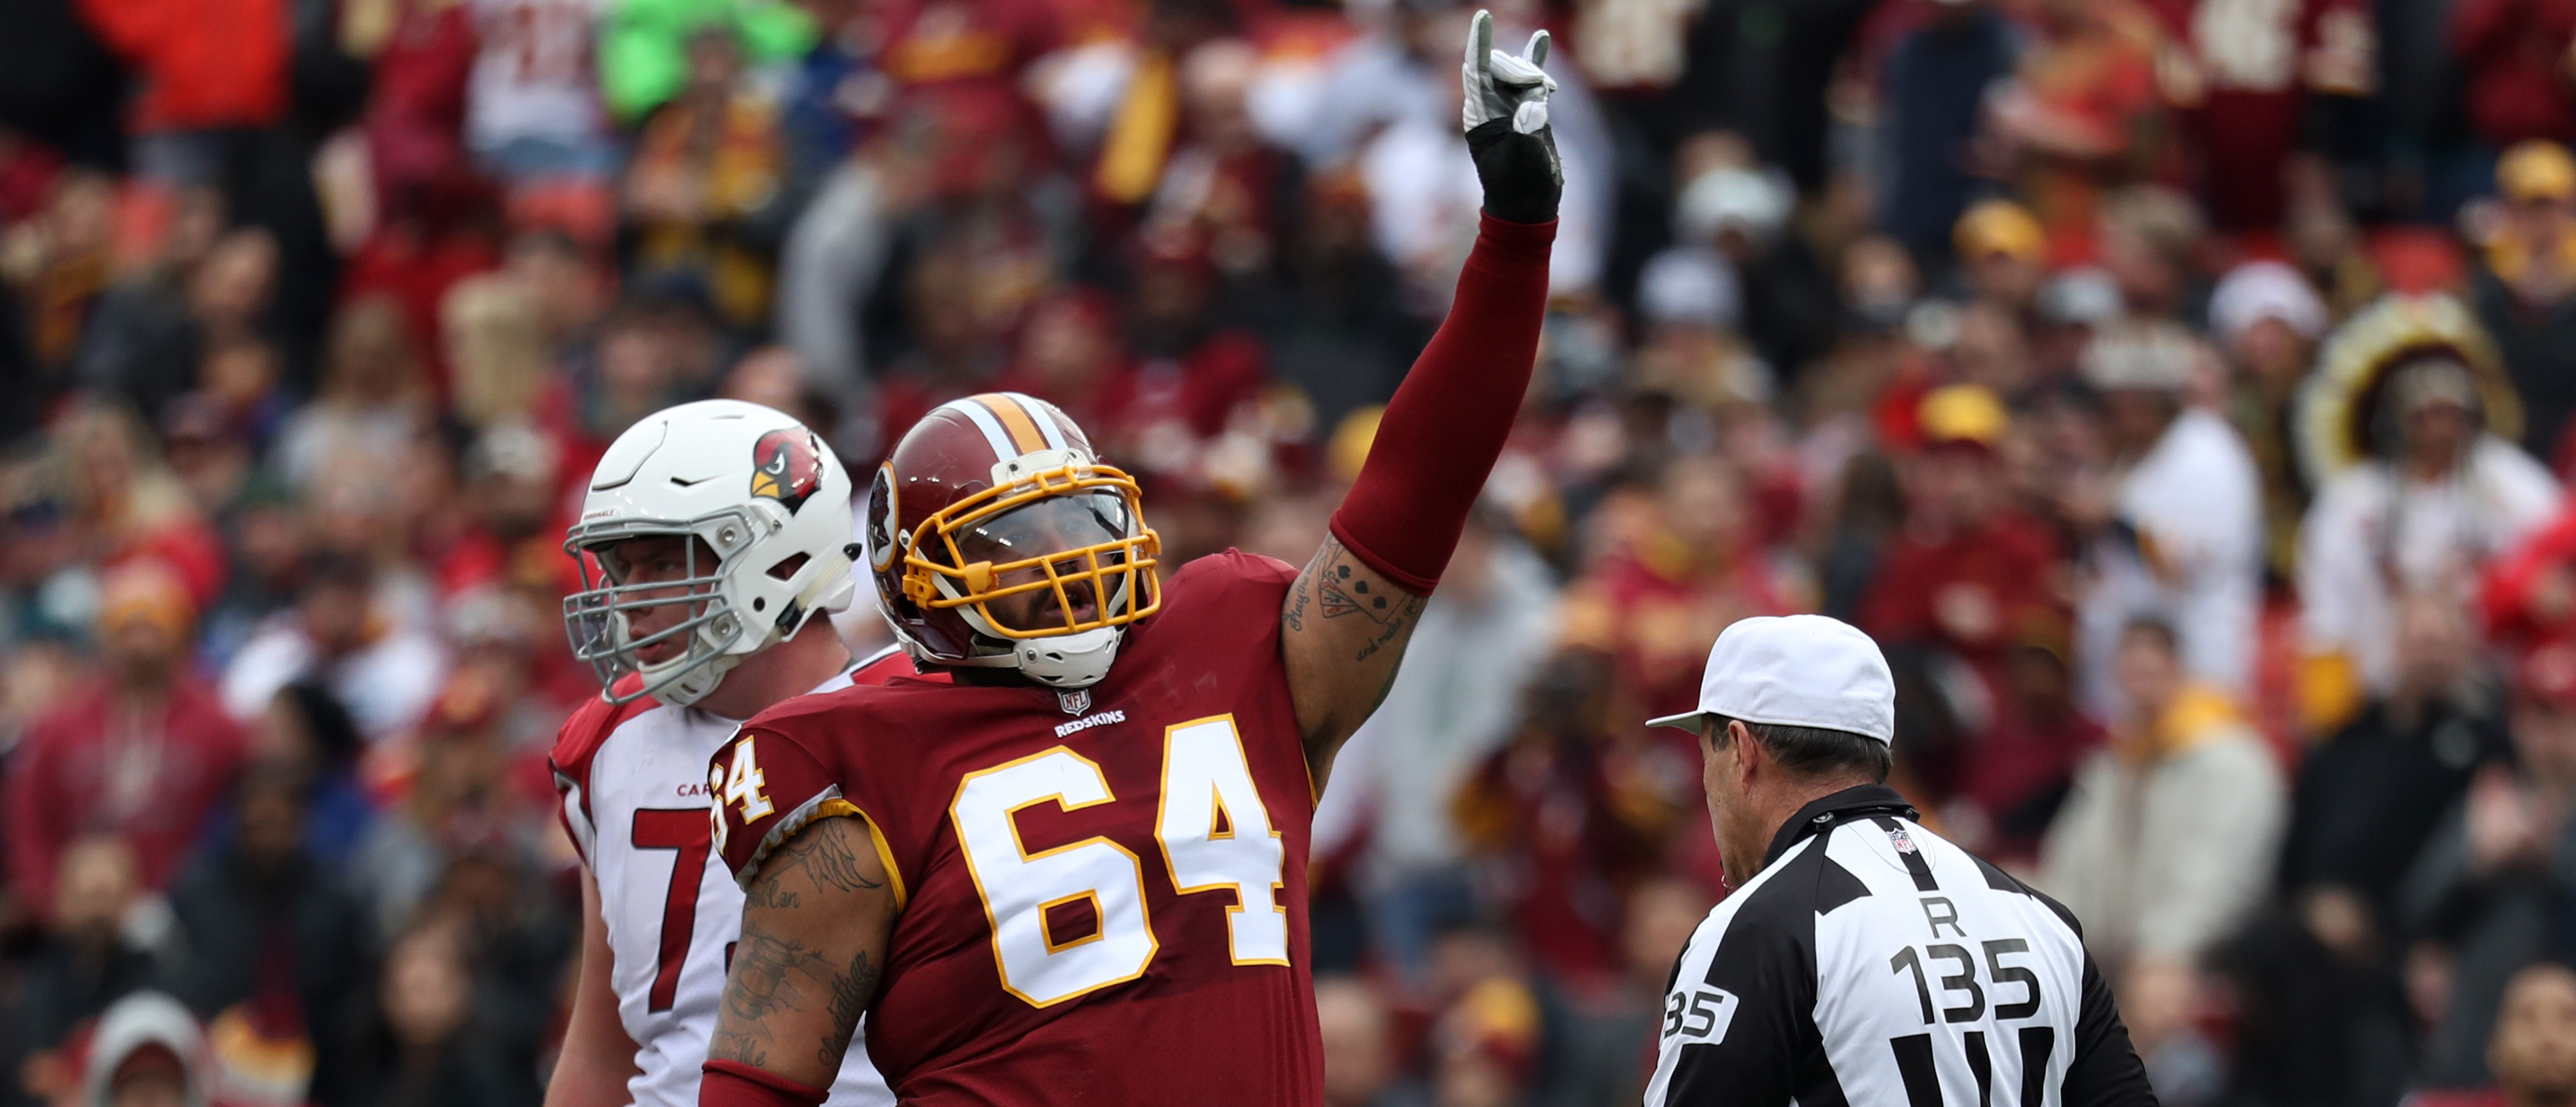 Defensive Tackle A.J. Francis #64 of the Washington Redskins celebrates after a play in the second quarter against the Arizona Cardinals at FedEx Field on December 17, 2017 in Landover, Maryland. (Photo by Rob Carr/Getty Images)